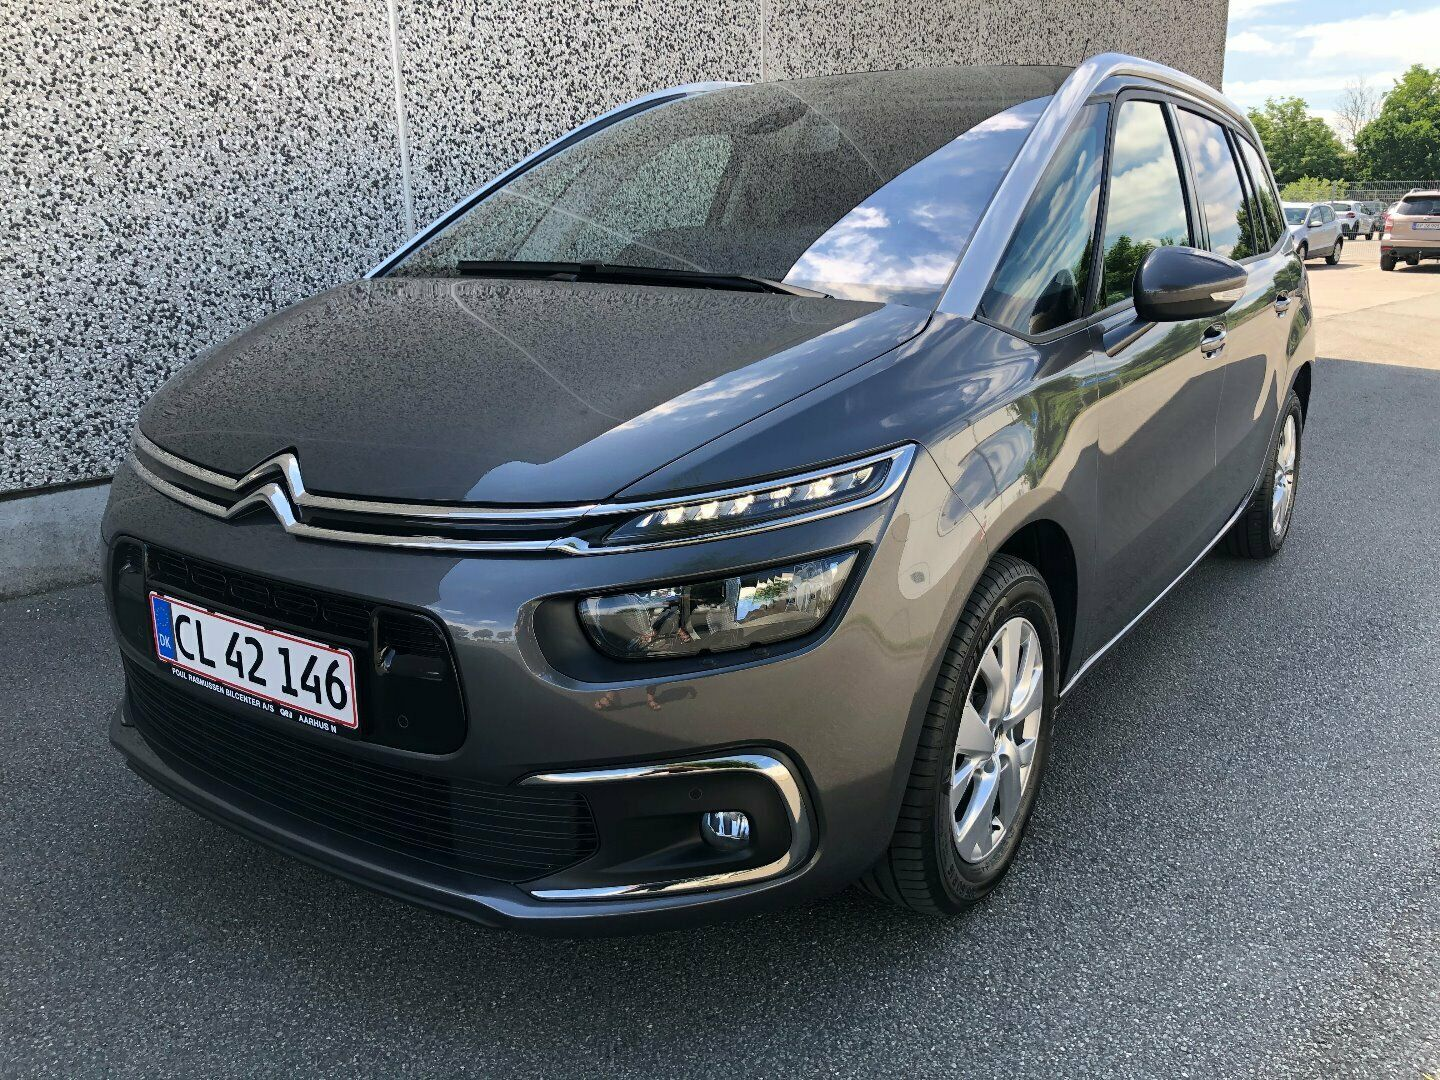 Citroën Grand C4 SpaceTourer 1,5 BlueHDi 130 Intensive+ EAT8 5d